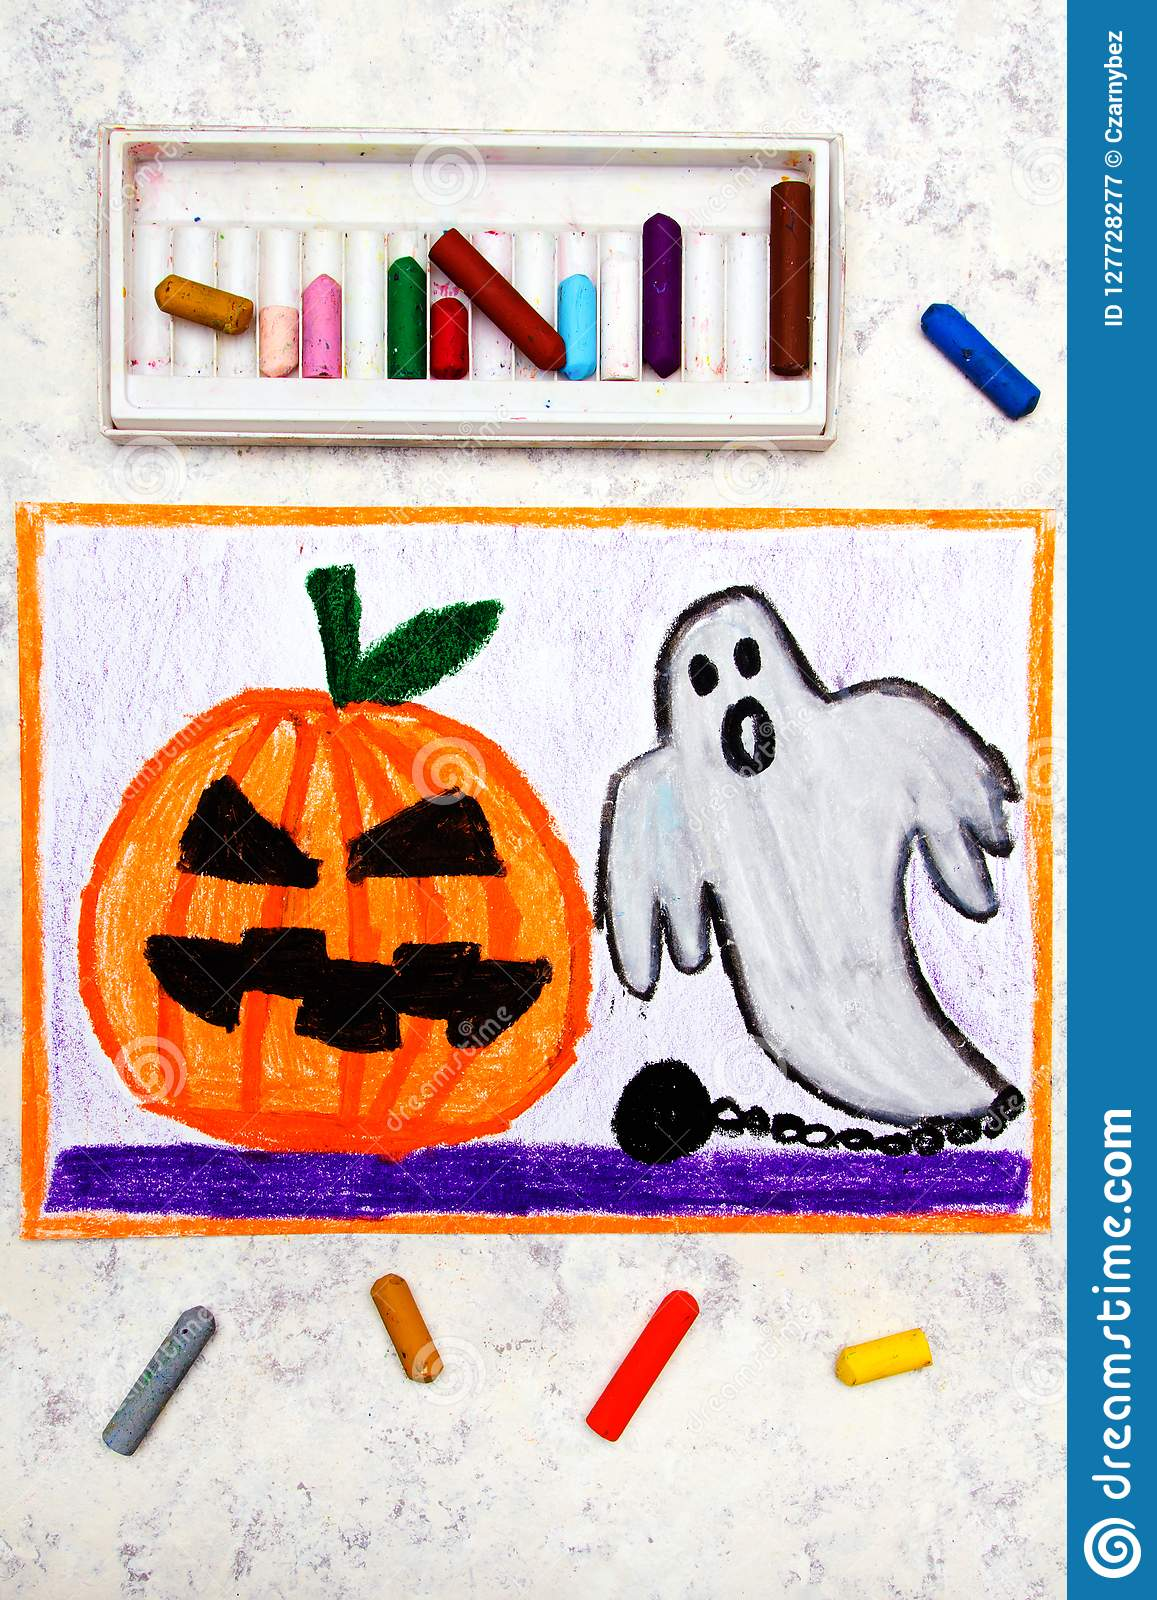 Colorful hand drawing: Cute Hallowen Pumpkin and Scary Ghost